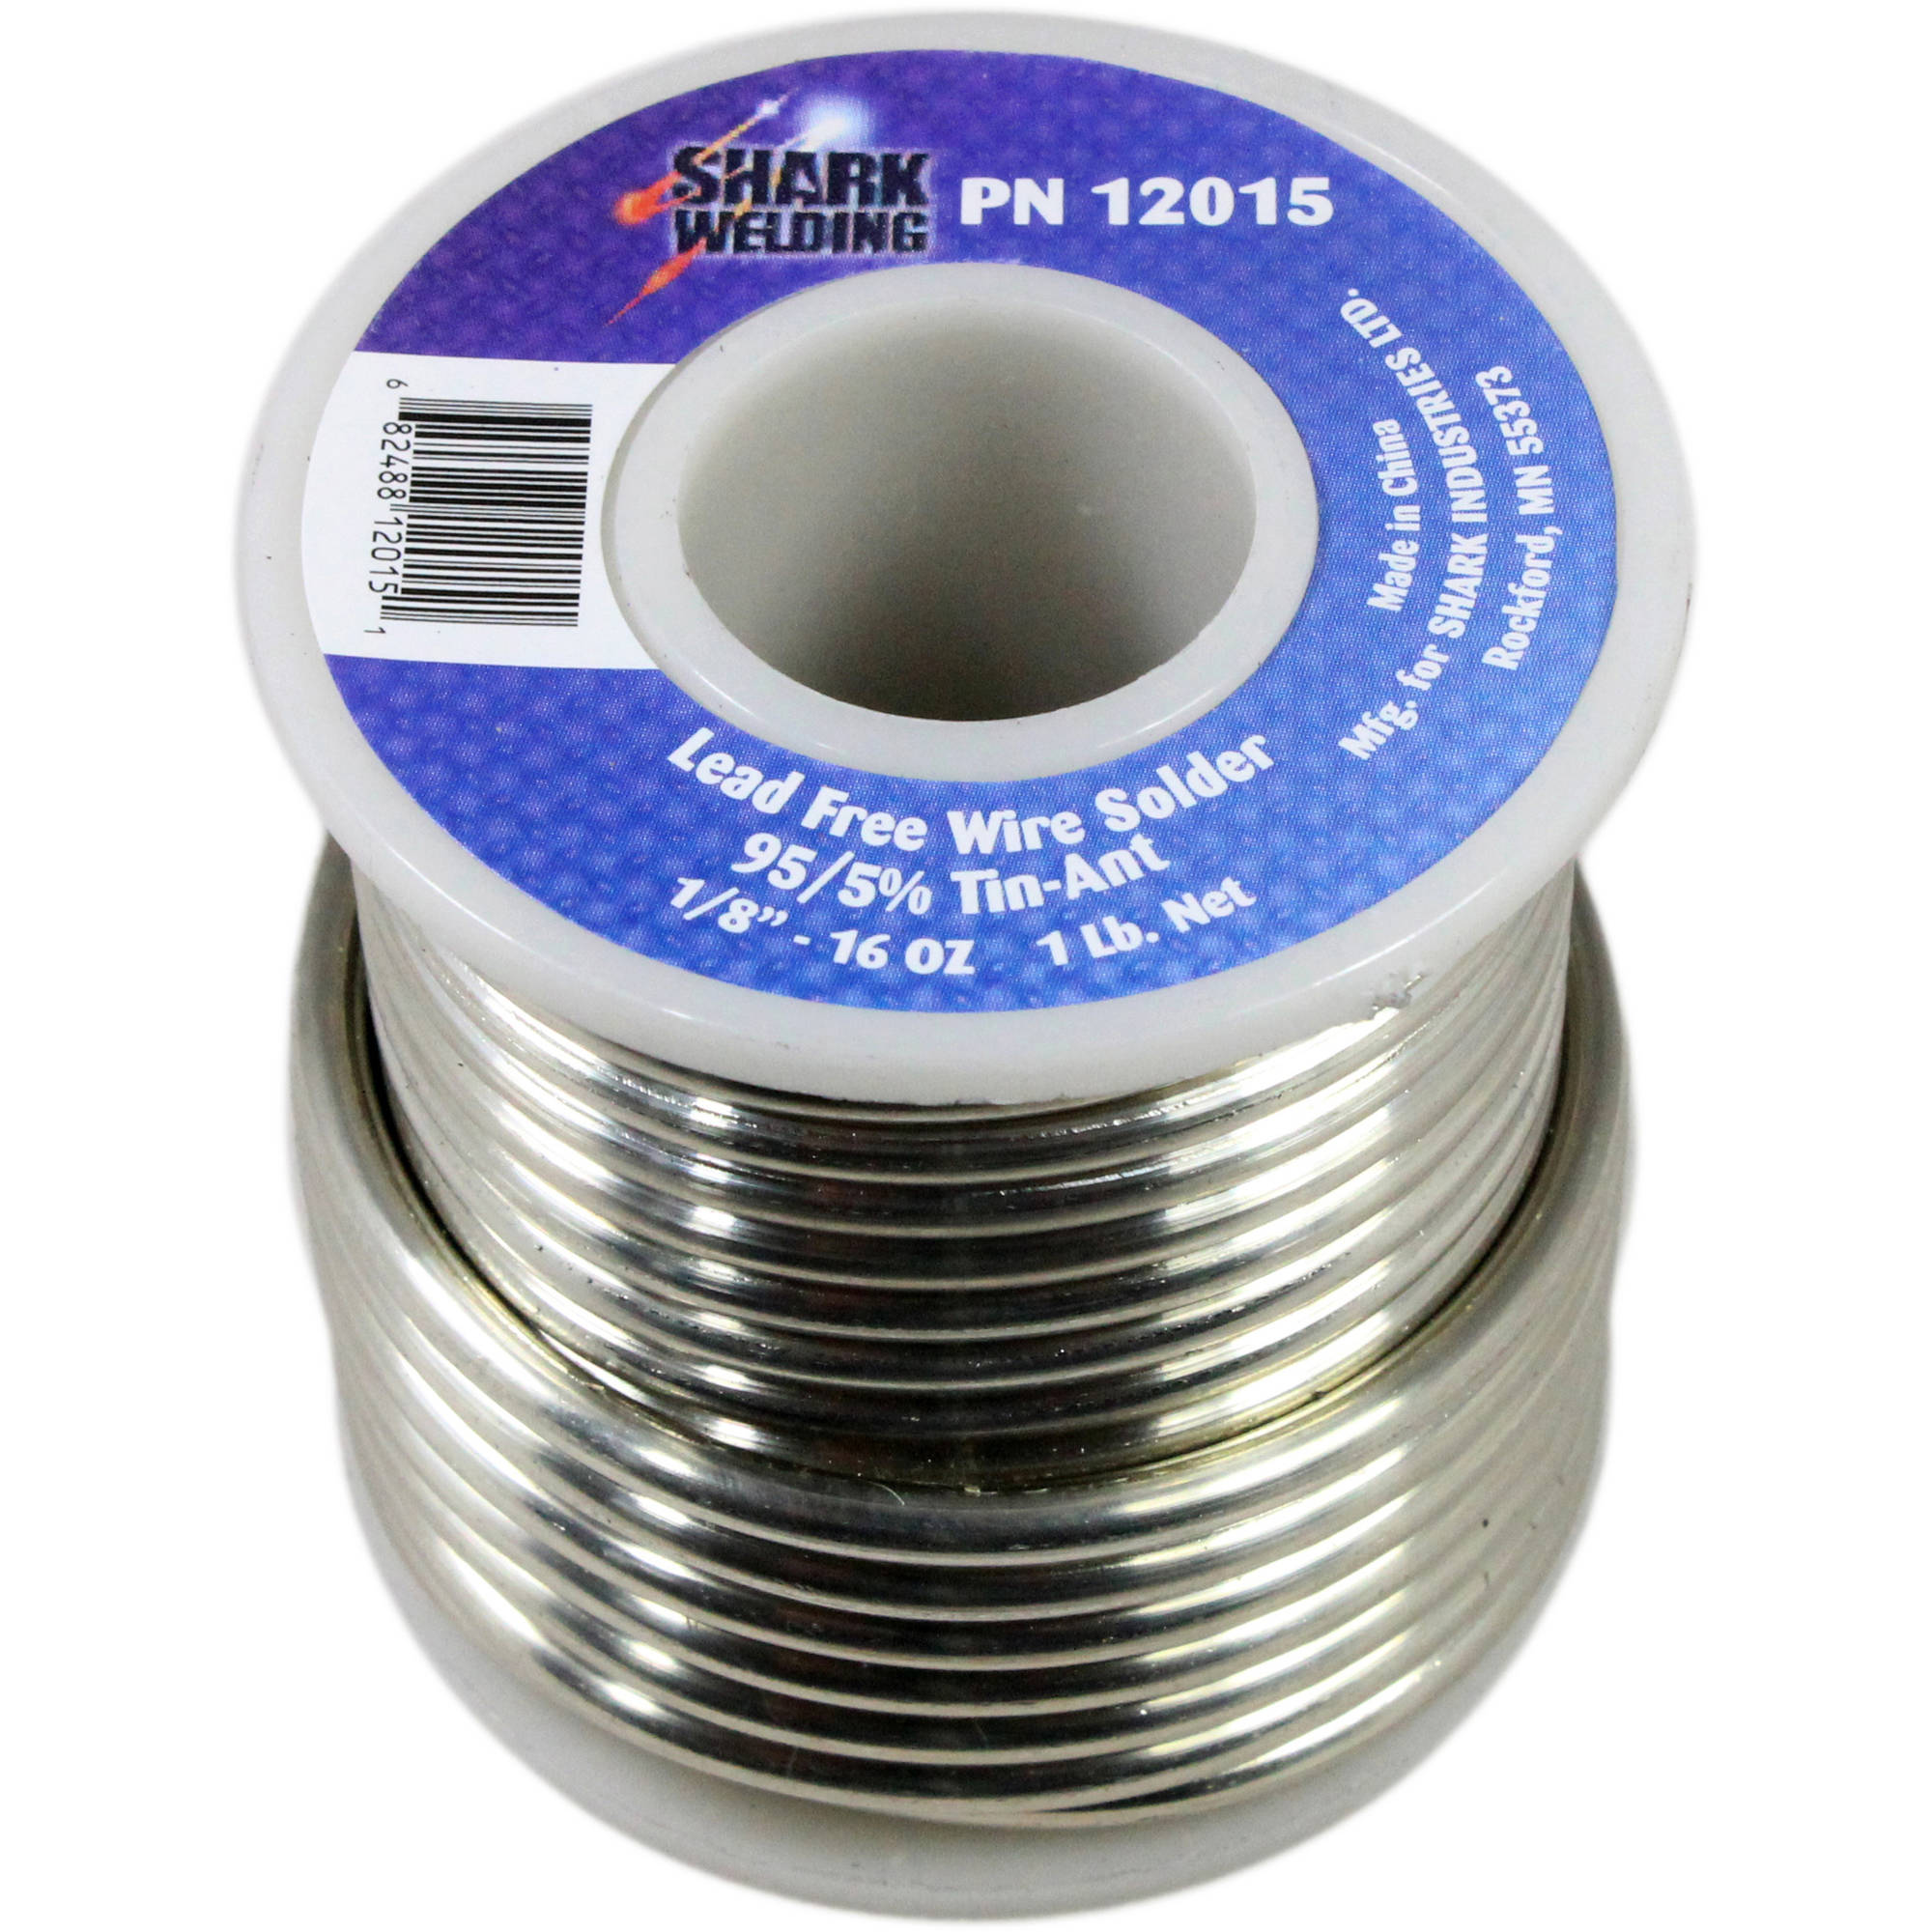 "Shark  0.125"" Lead-Free Wire Solder, 95/5 Percent, 1 lb"